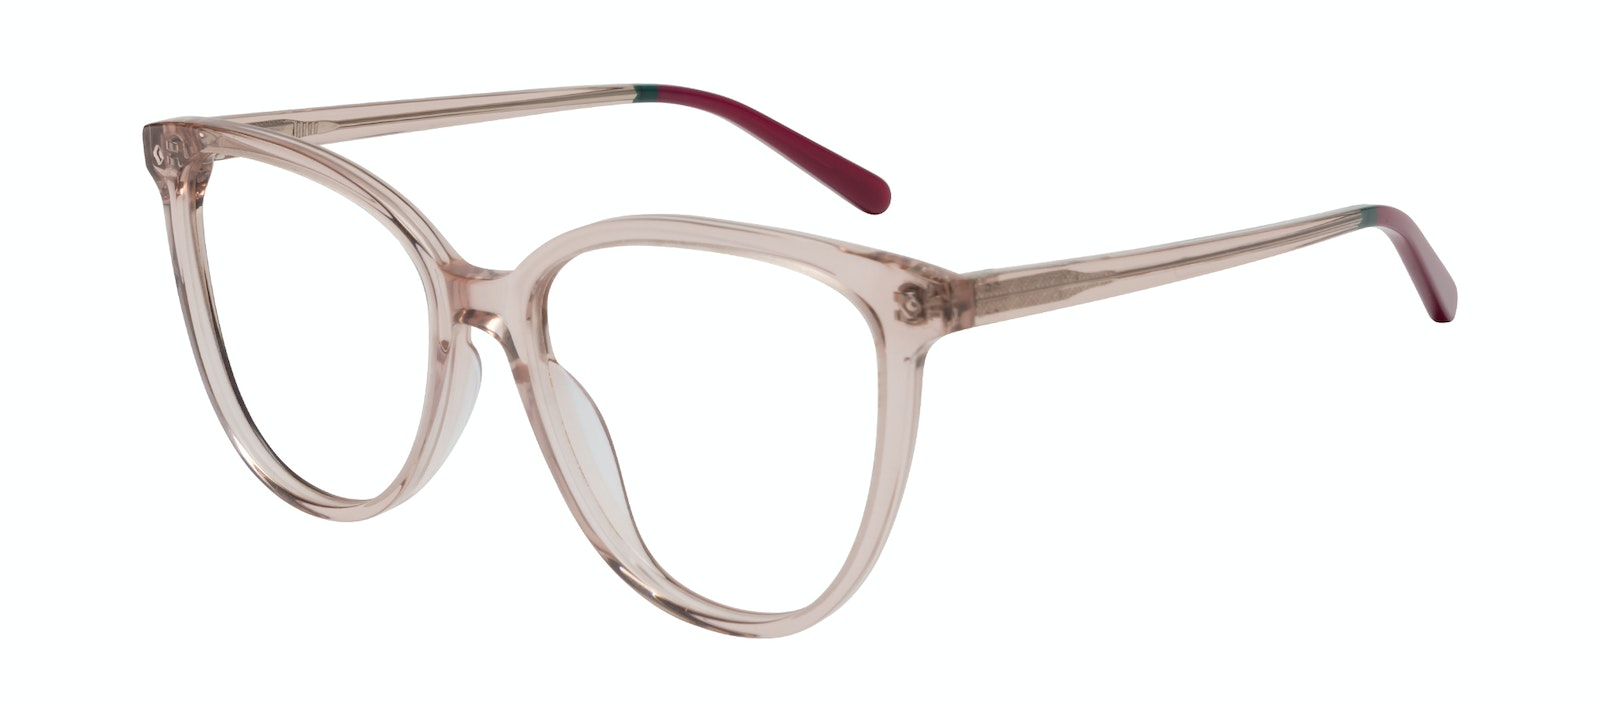 Affordable Fashion Glasses Cat Eye Eyeglasses Women Jane Rose Tilt